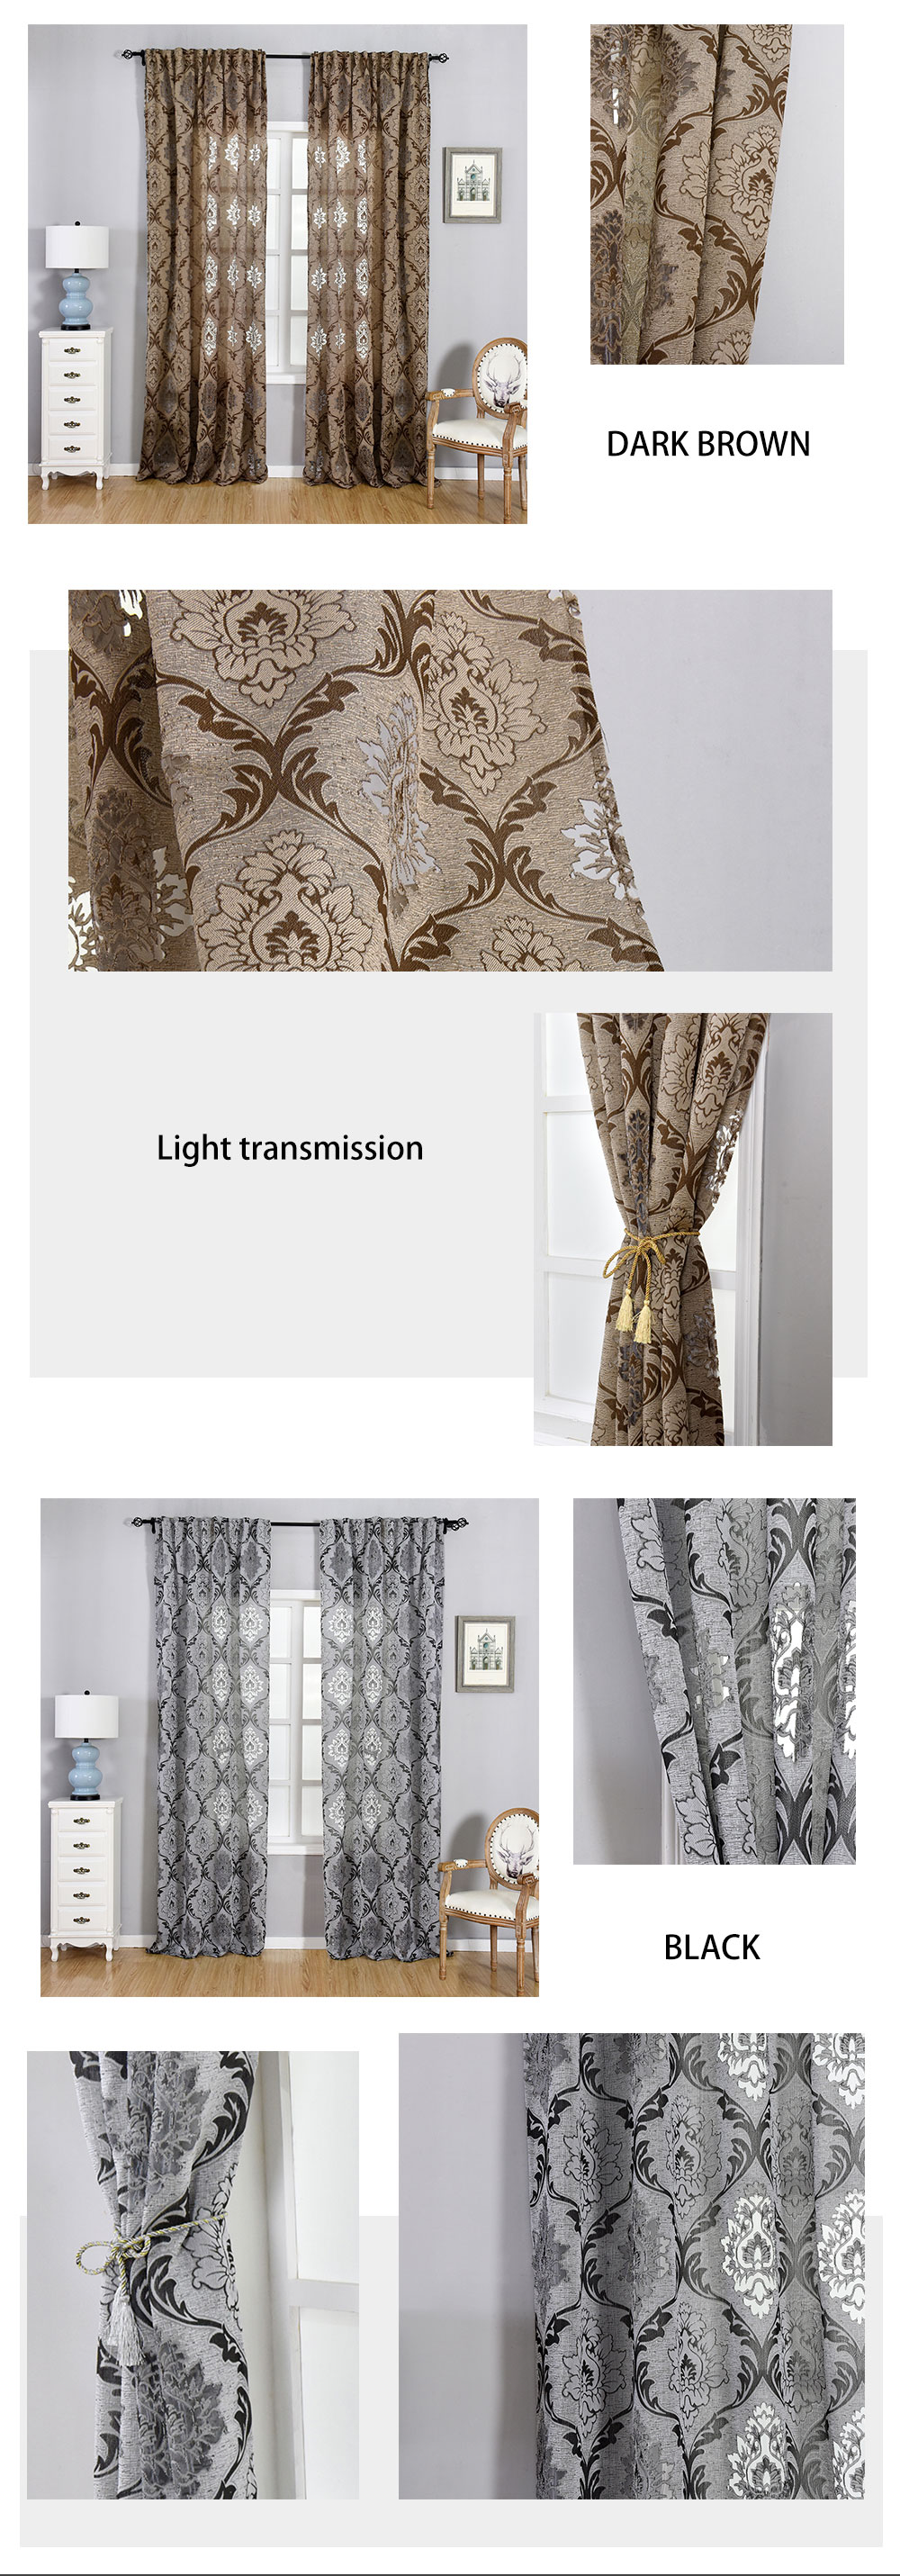 1 NAPEARL Window Panel Screening Floral Jacquard Semi-shades Curtains Free Shipping Brown for Bedroom Natural Ready Made Fabrics (2)